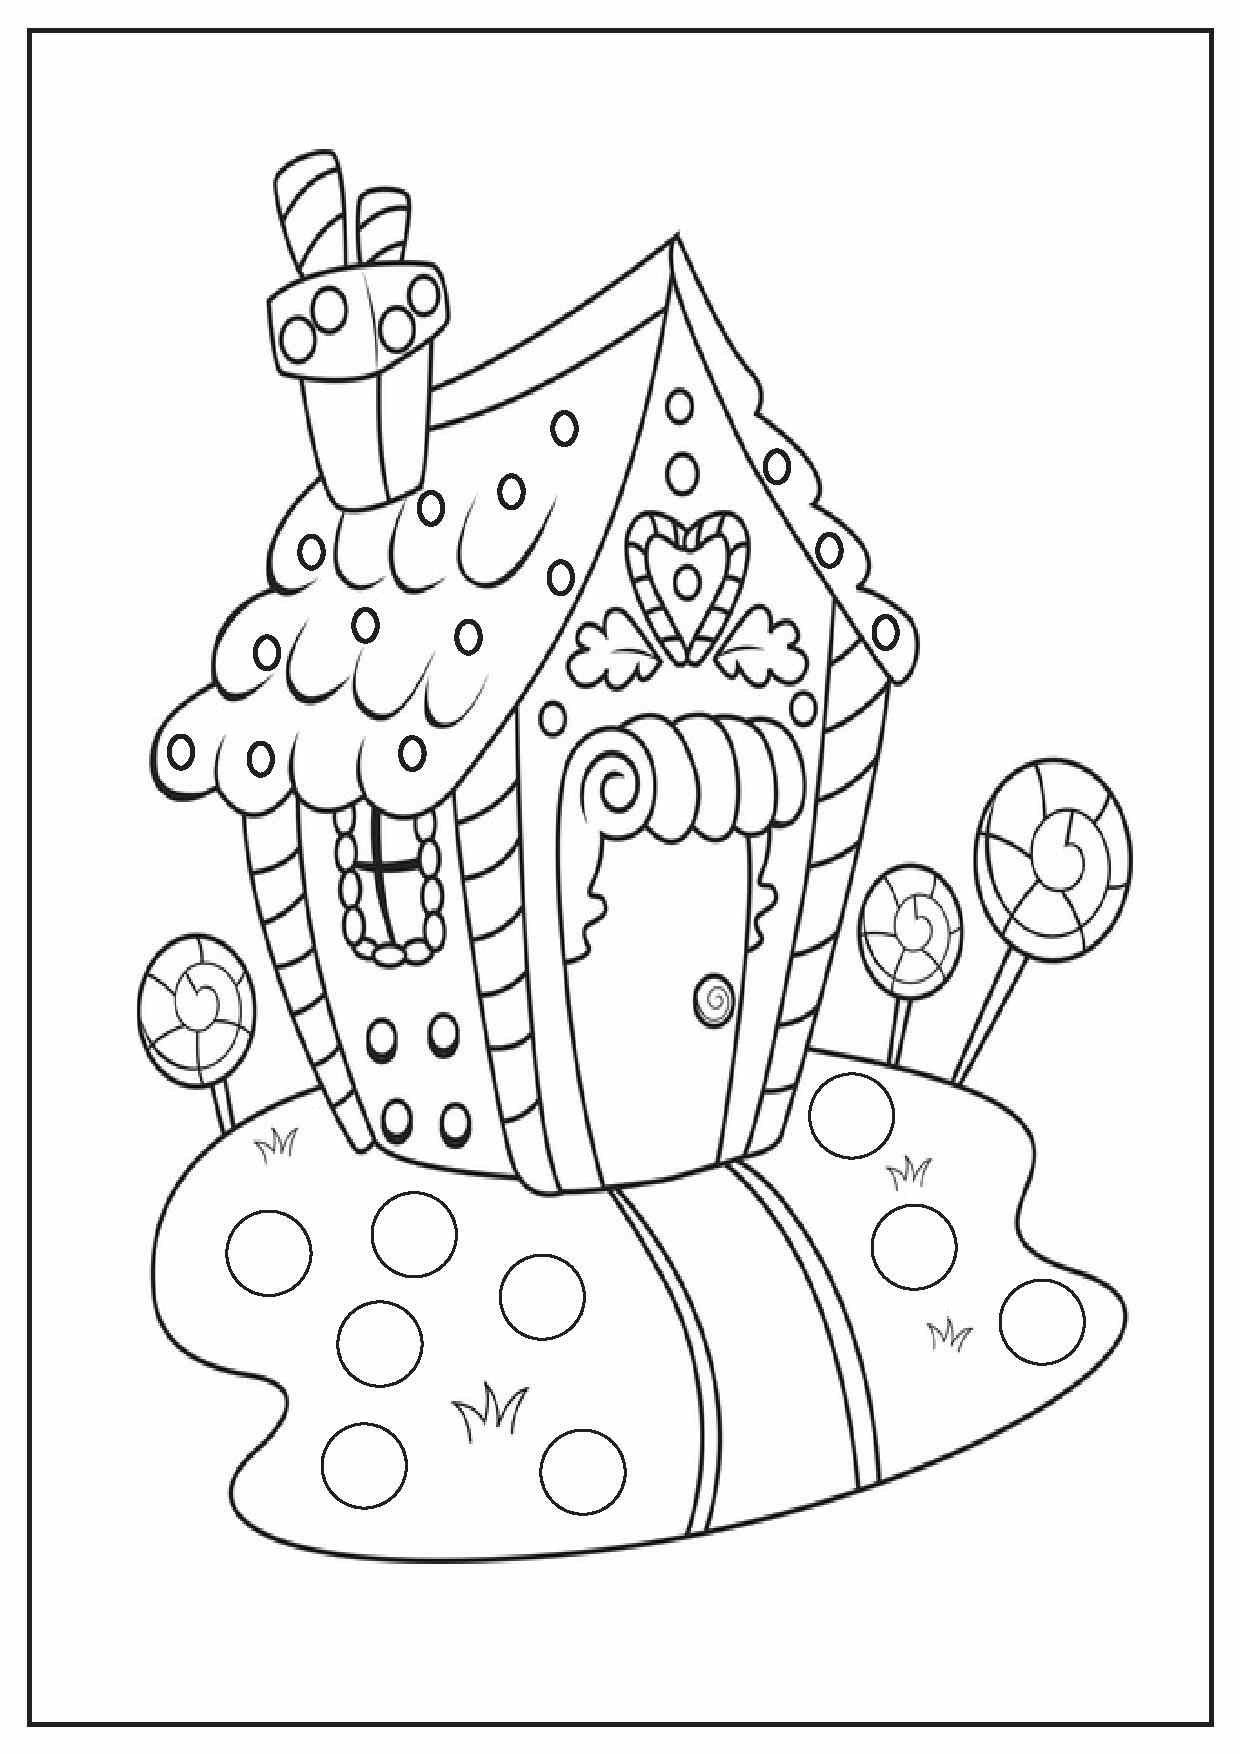 Christmas Coloring Activity Sheets With Pages Printable